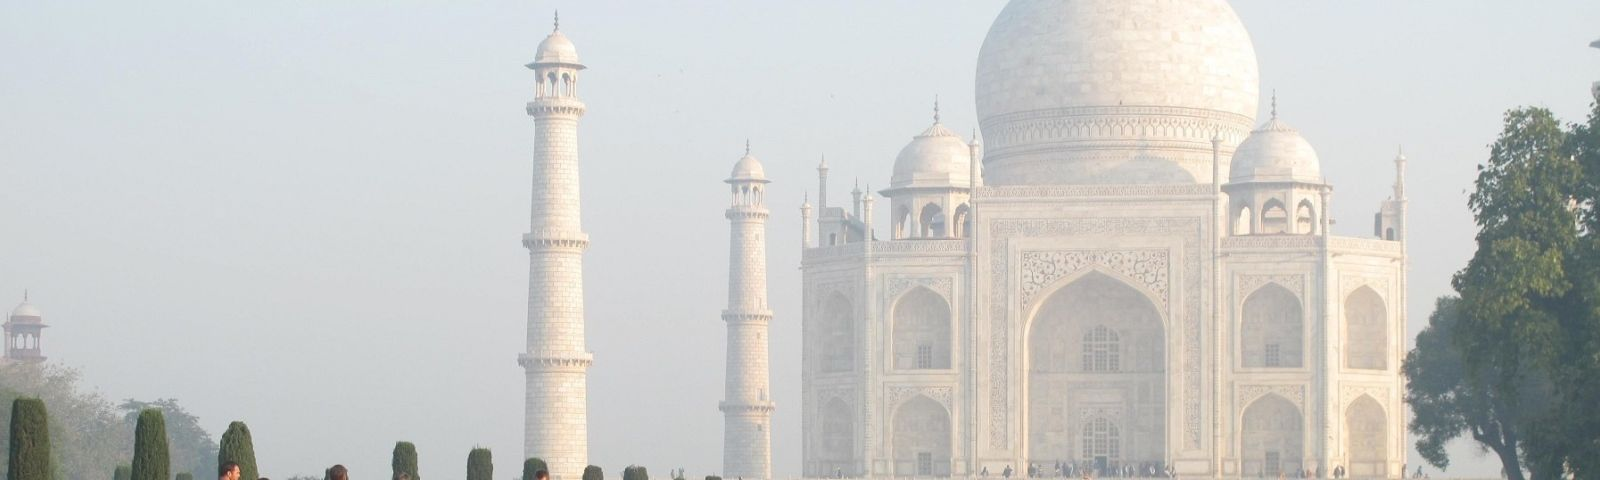 Beautiful Taj Mahal at dawn